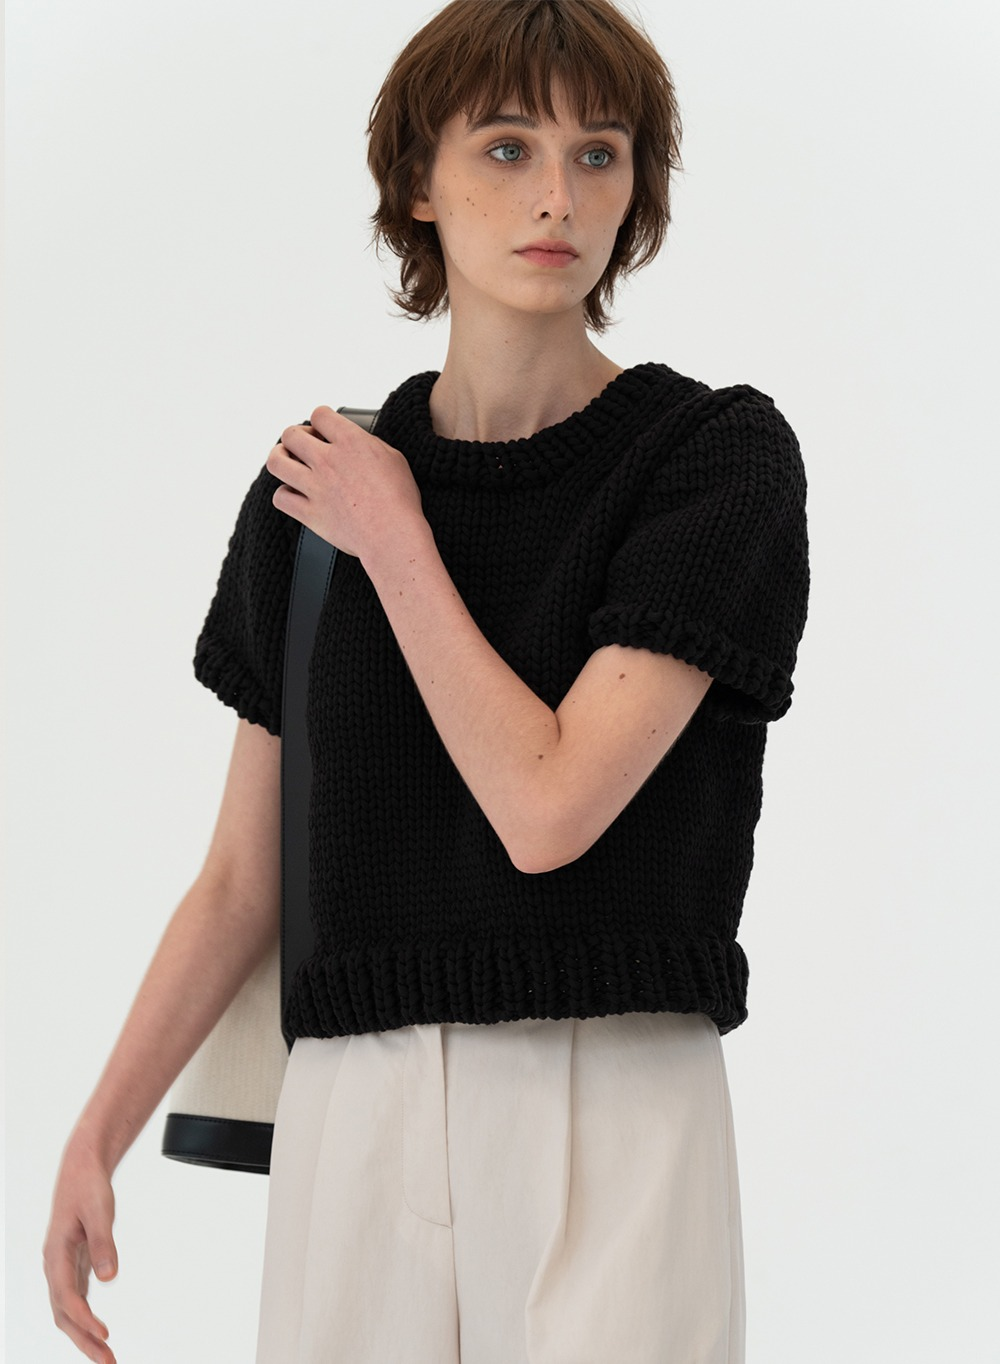 [ESSENTIAL]Hand-made Bulky Knitted Top Black